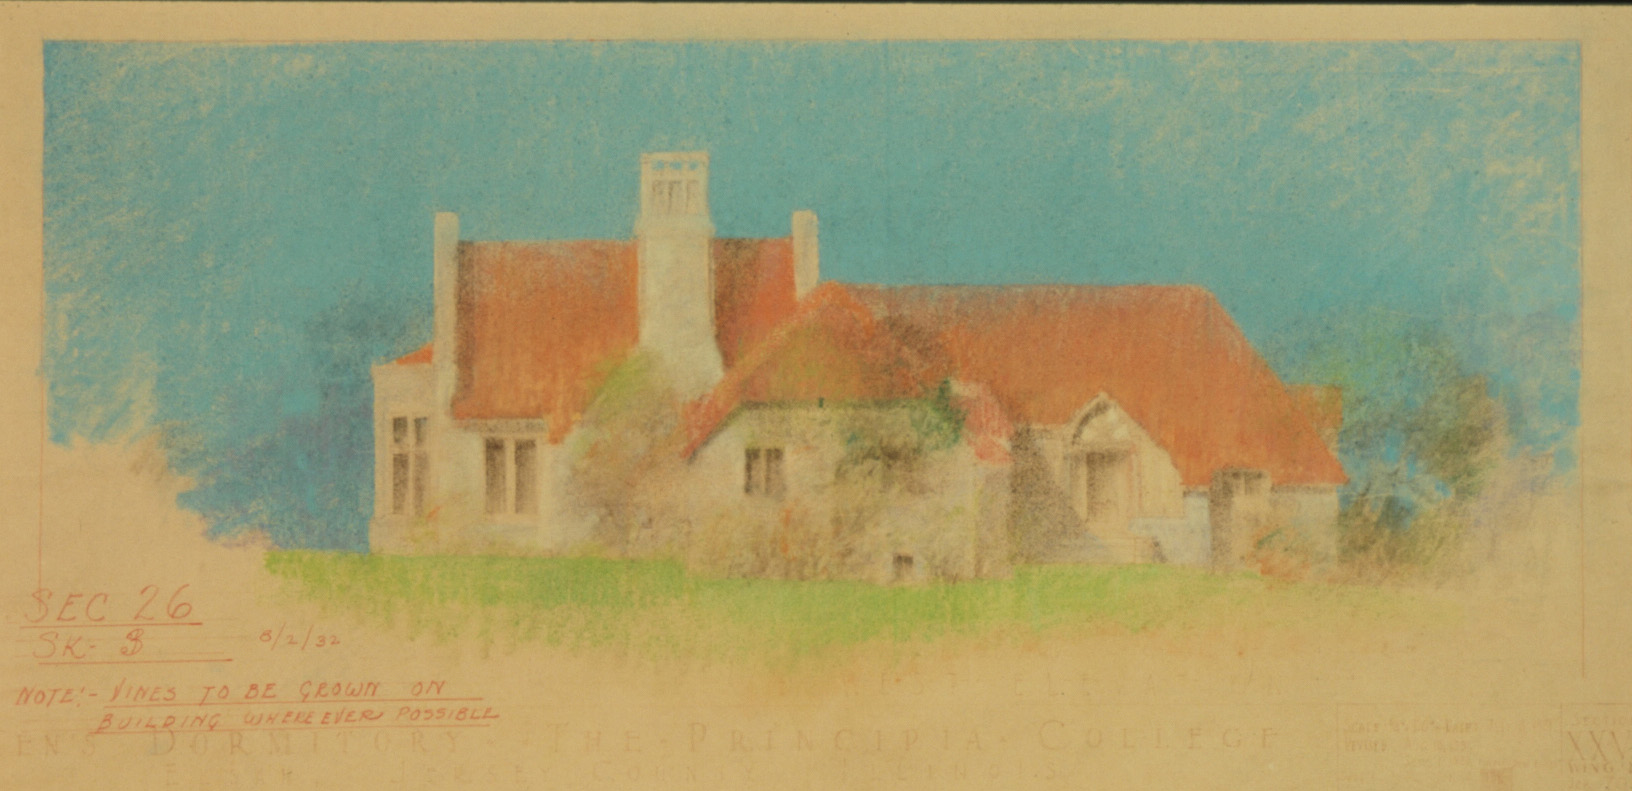 Maybeck & White Collection, Buck House (West elevation) Vine Plantings, 1932, Pastel over red print, 16 x 32 in.